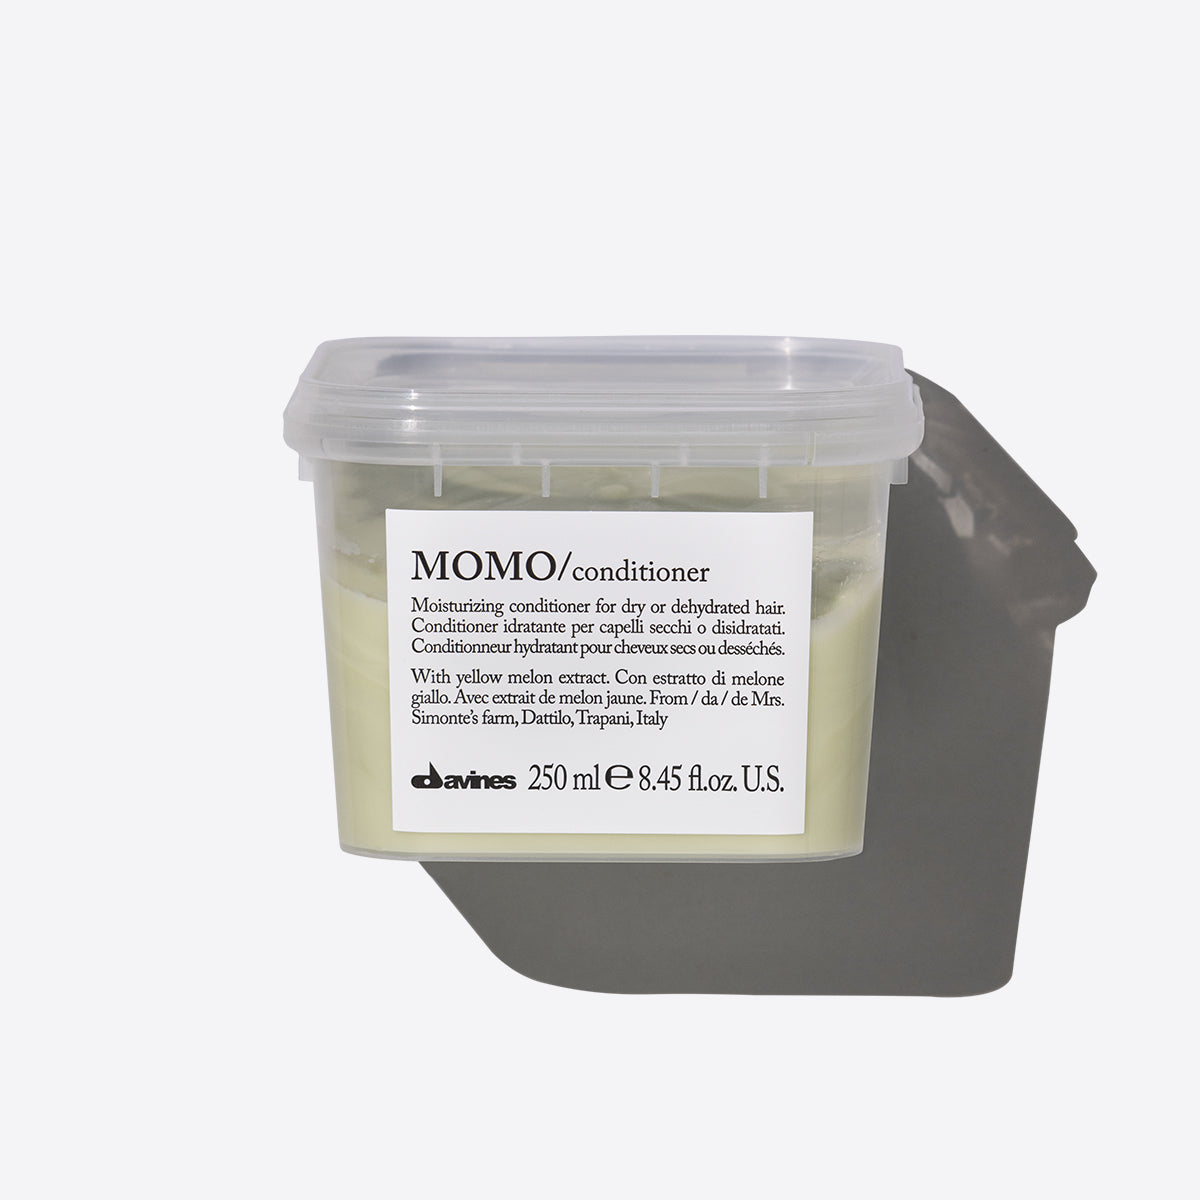 MOMO Conditioner 1  250 ml / 0 fl.oz.Davines